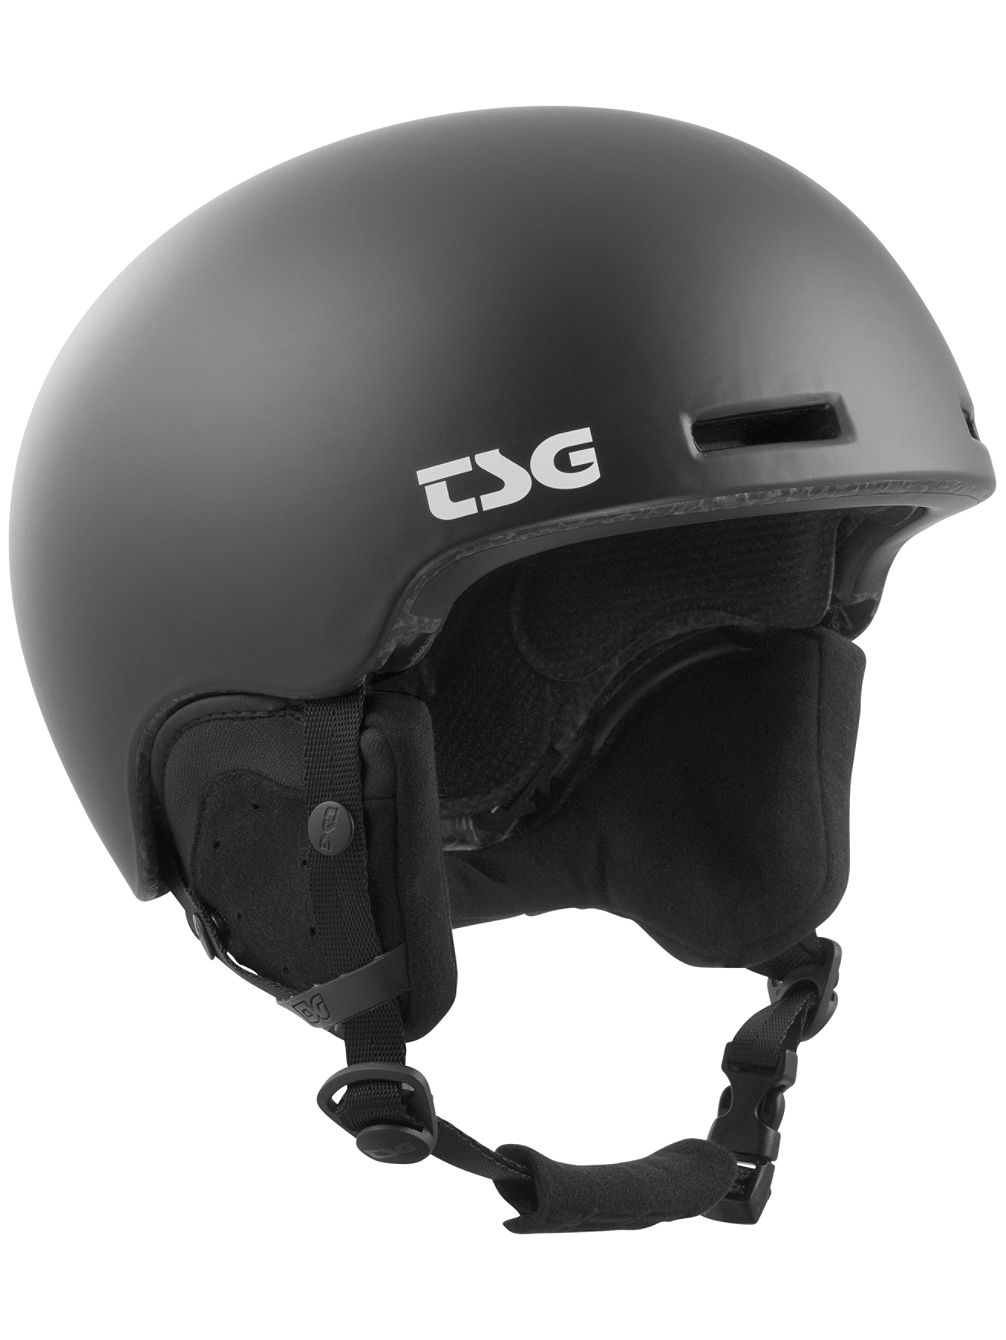 Fly Solid Color Helmet